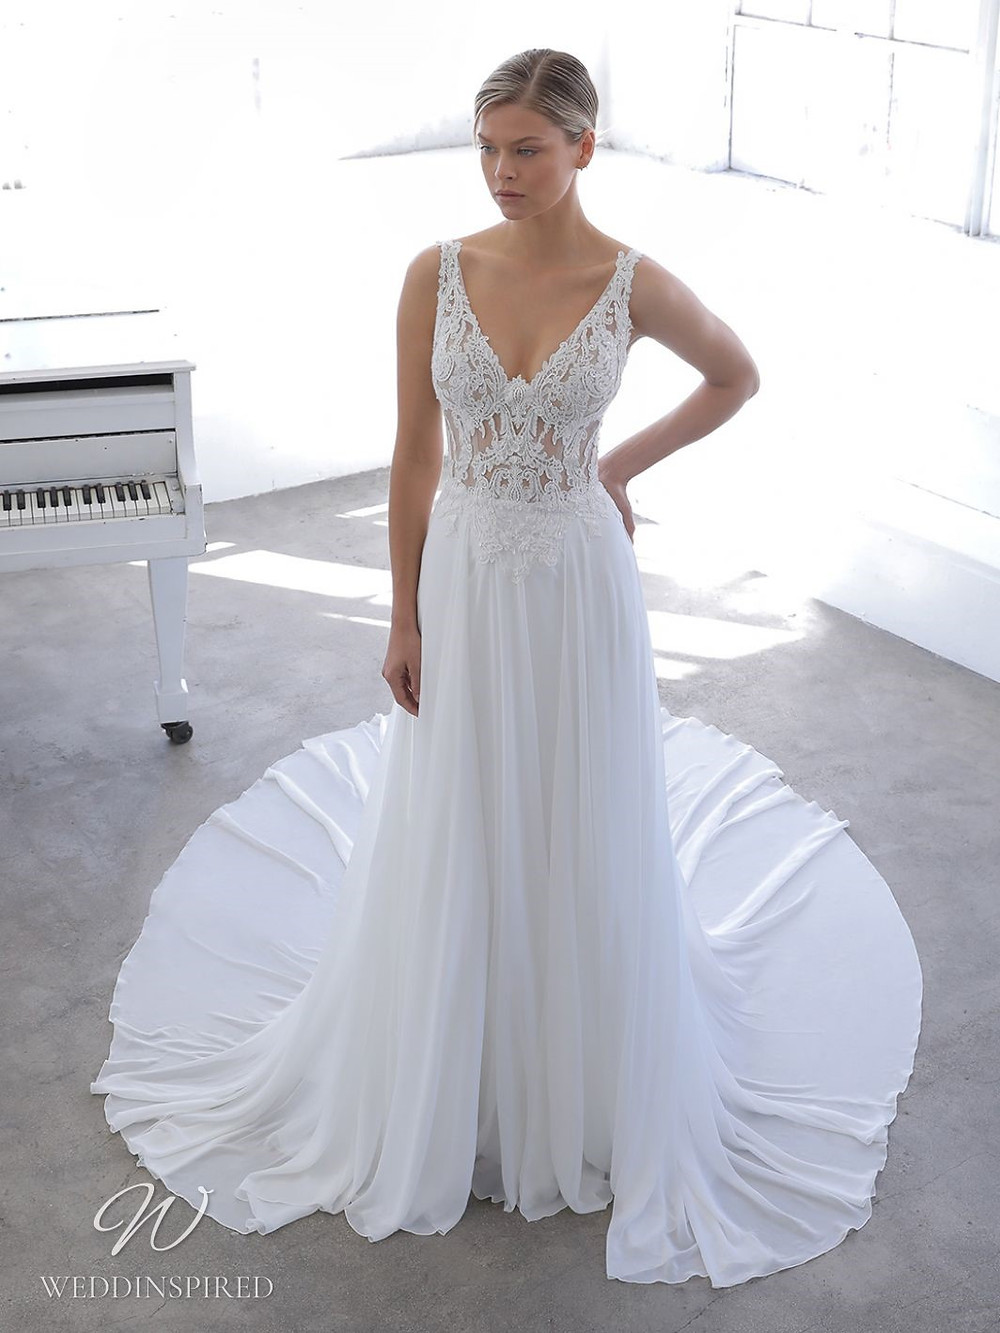 A Blue by Enzoani 2021 lace and crepe sheath wedding dress with straps and a v neck